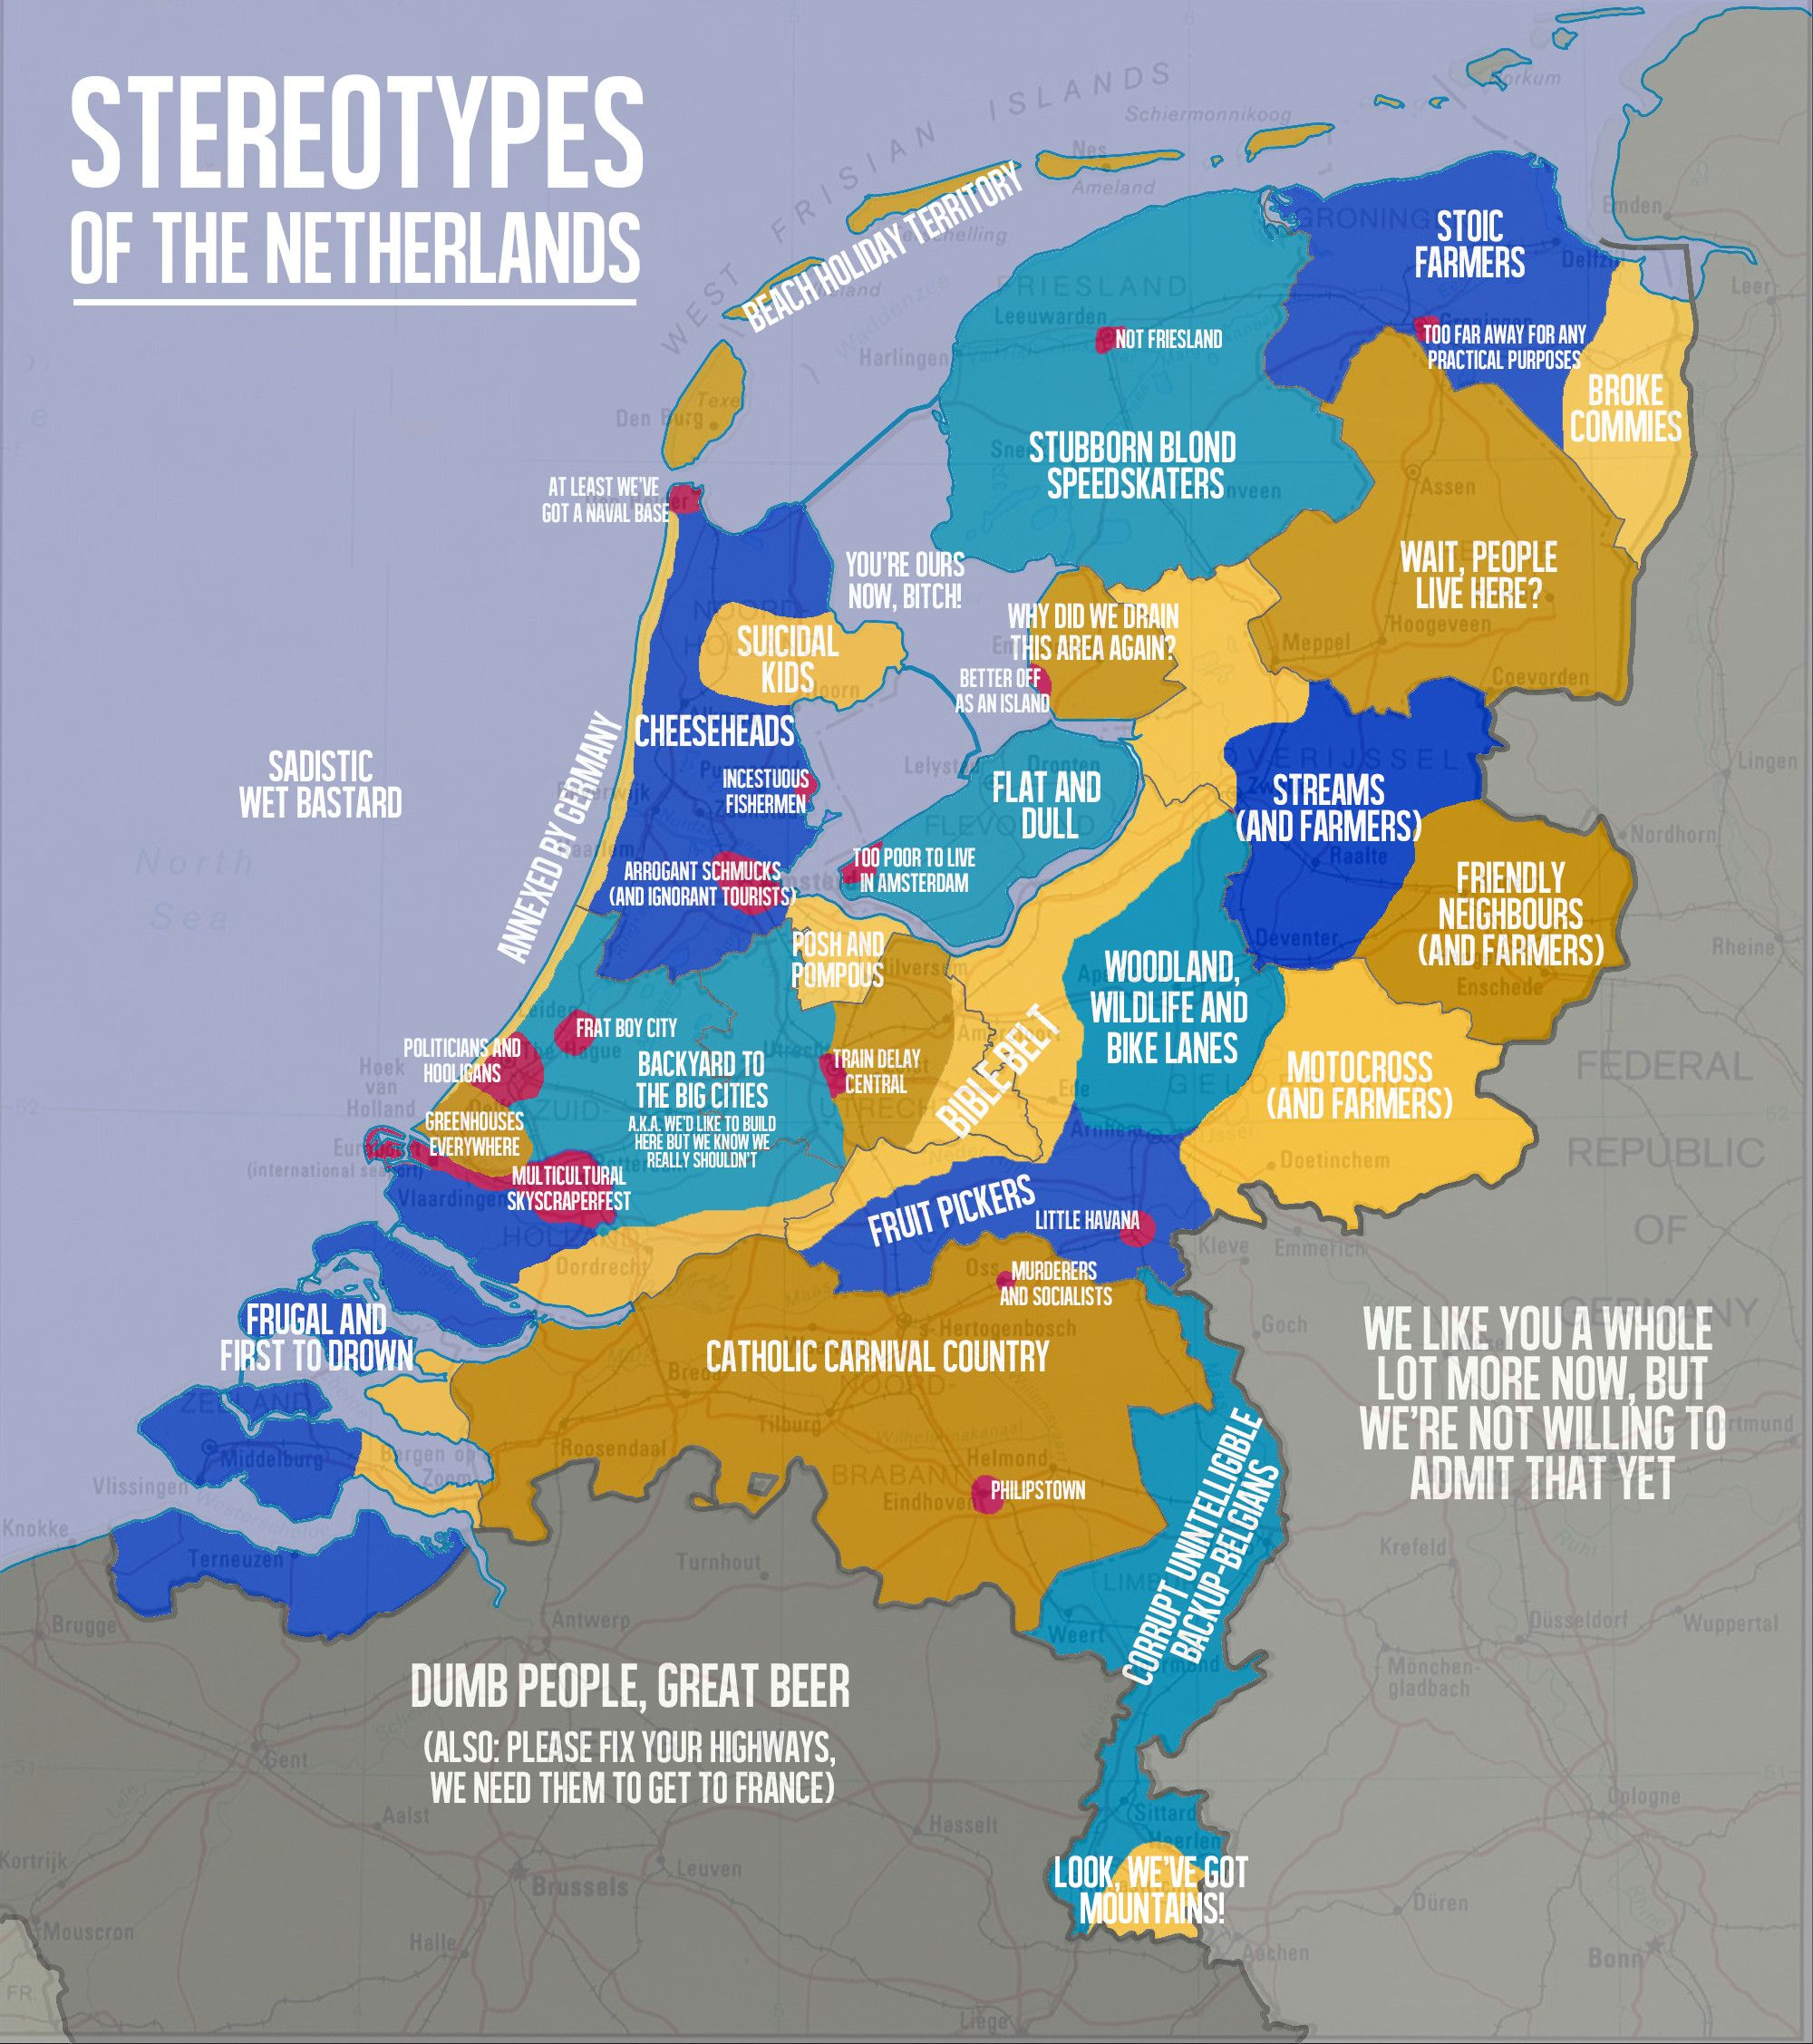 Stereotypes of the Netherlands Blondes Geography and Netherlands